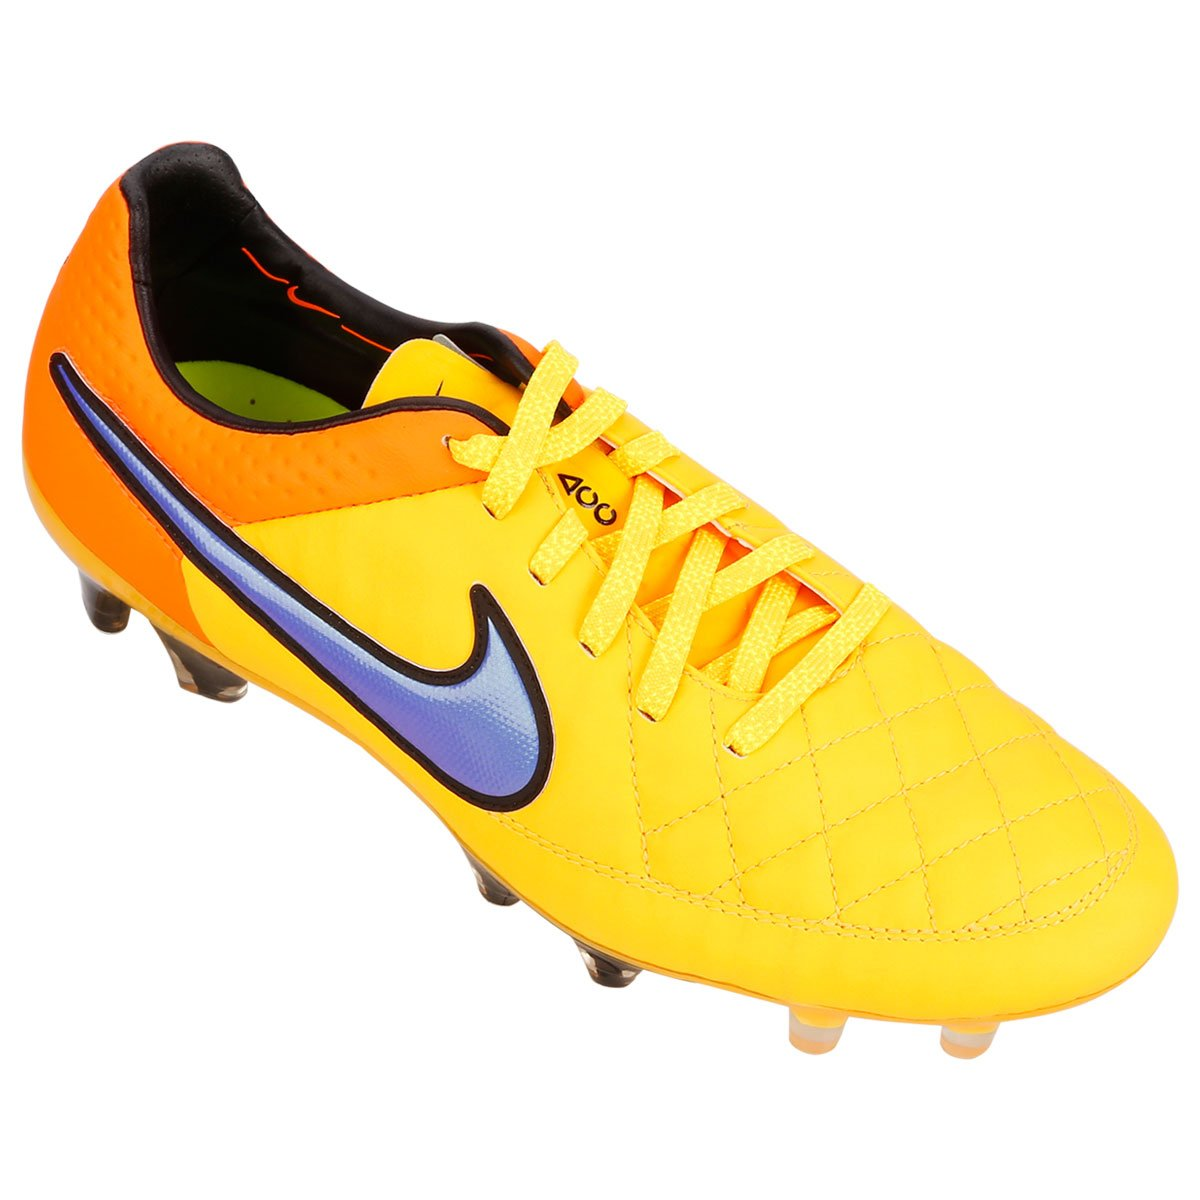 5cd20af3bfdcb Chuteira Nike Tiempo Legend 5 FG Campo | Netshoes